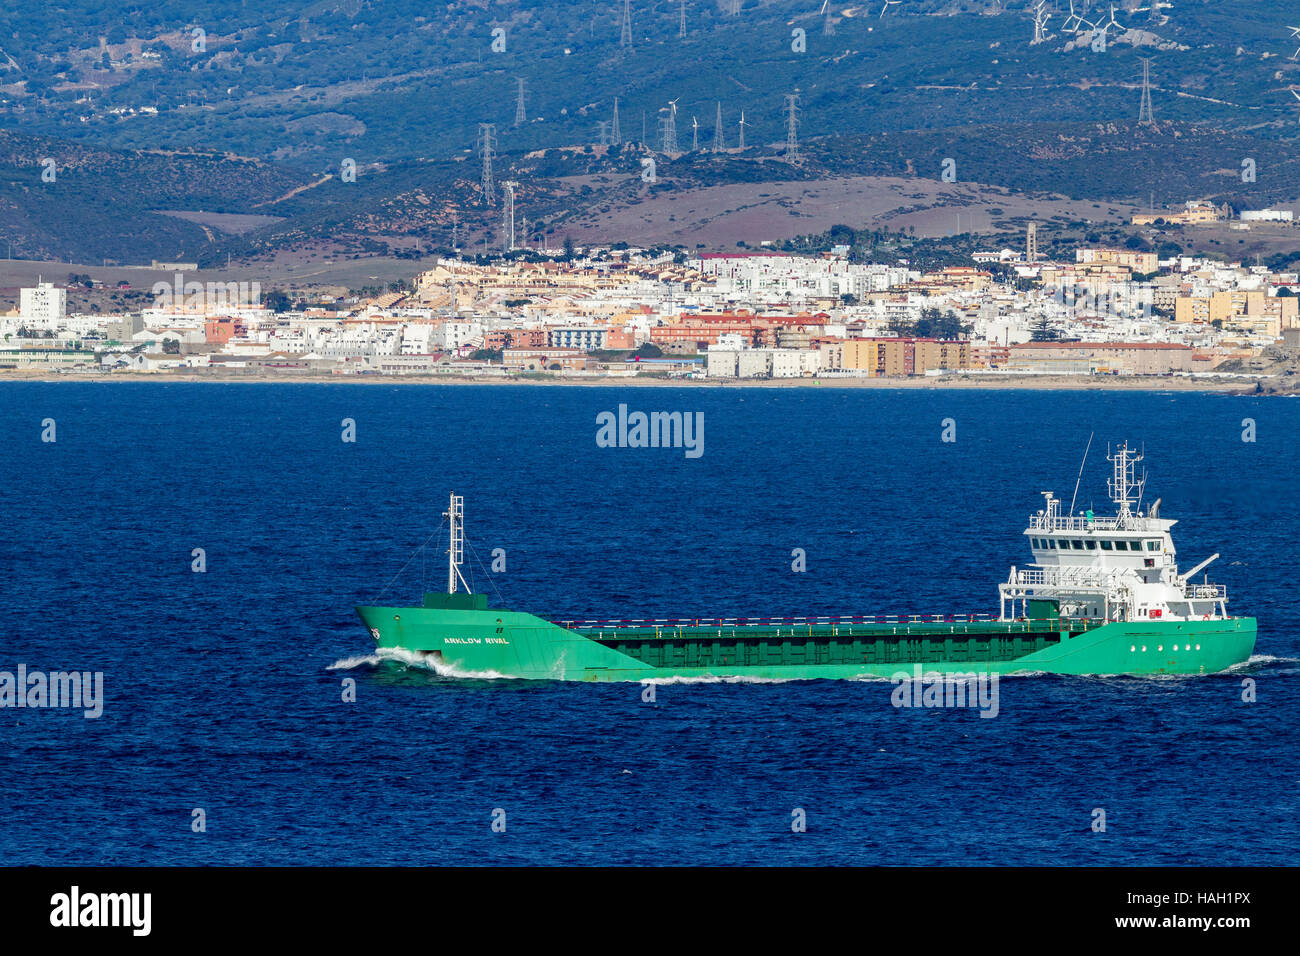 Ark low Rival, general Cargo ship of Gibraltar. - Stock Image